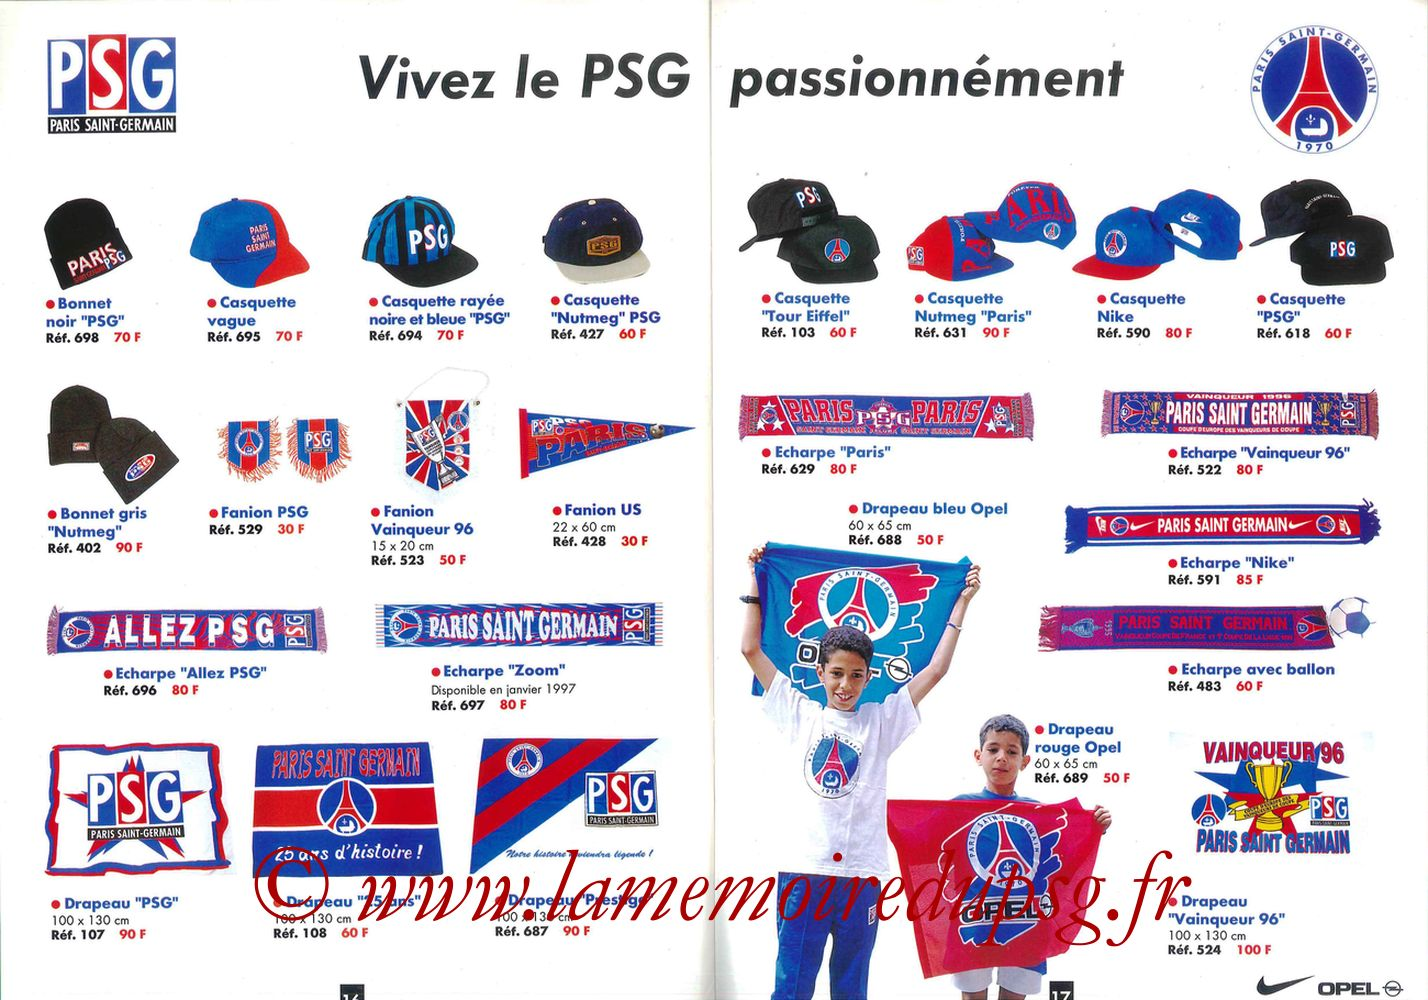 Catalogue PSG - 1996-97 - Pages 16 et 17